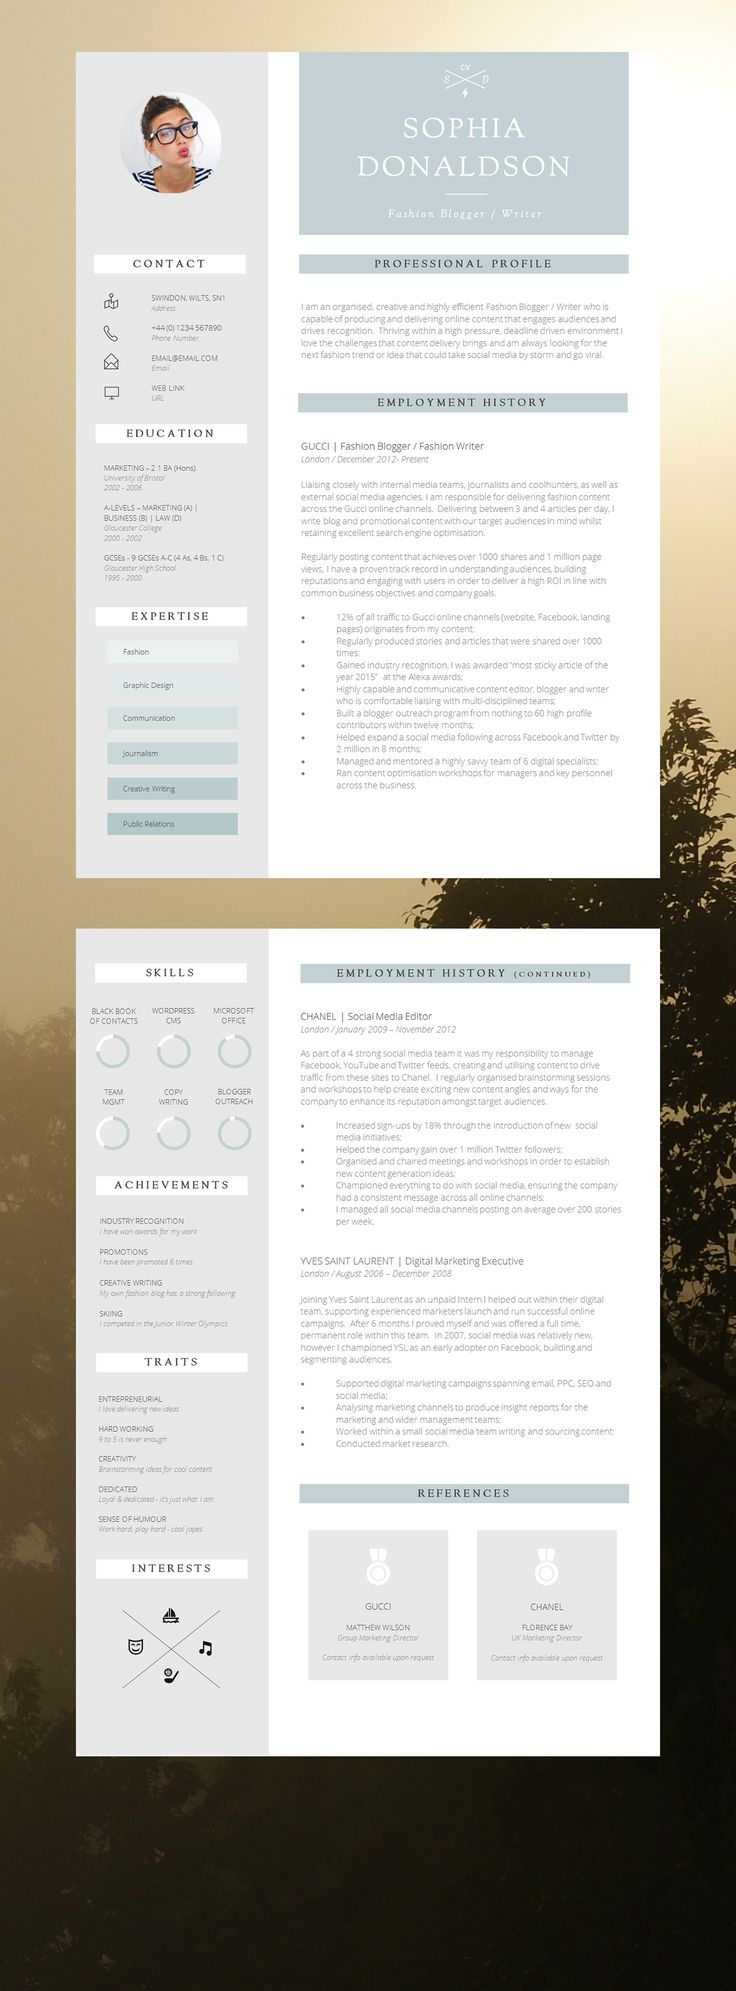 cv template modern cv design dont underestimate the power of a professional - Graphic Design Resume Template